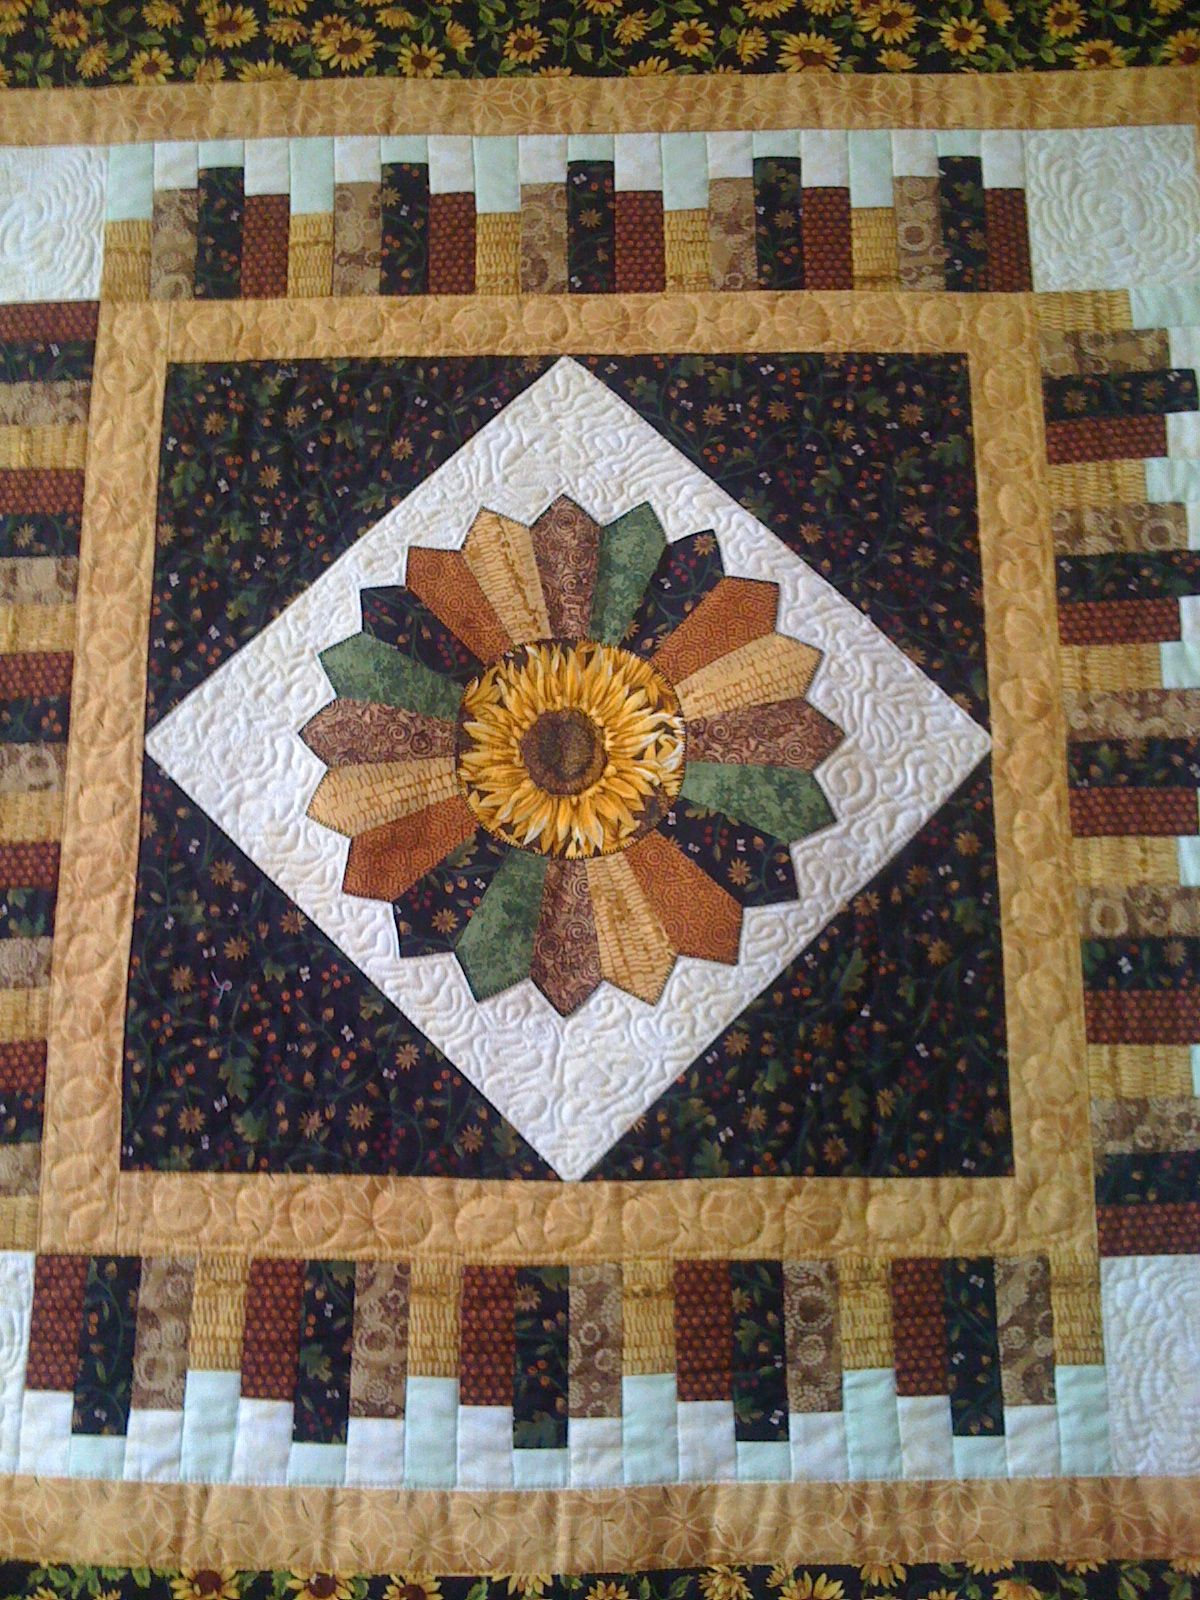 Sunflowers with piano keys border. | Quilted wall hangings ... : piano key quilt border - Adamdwight.com